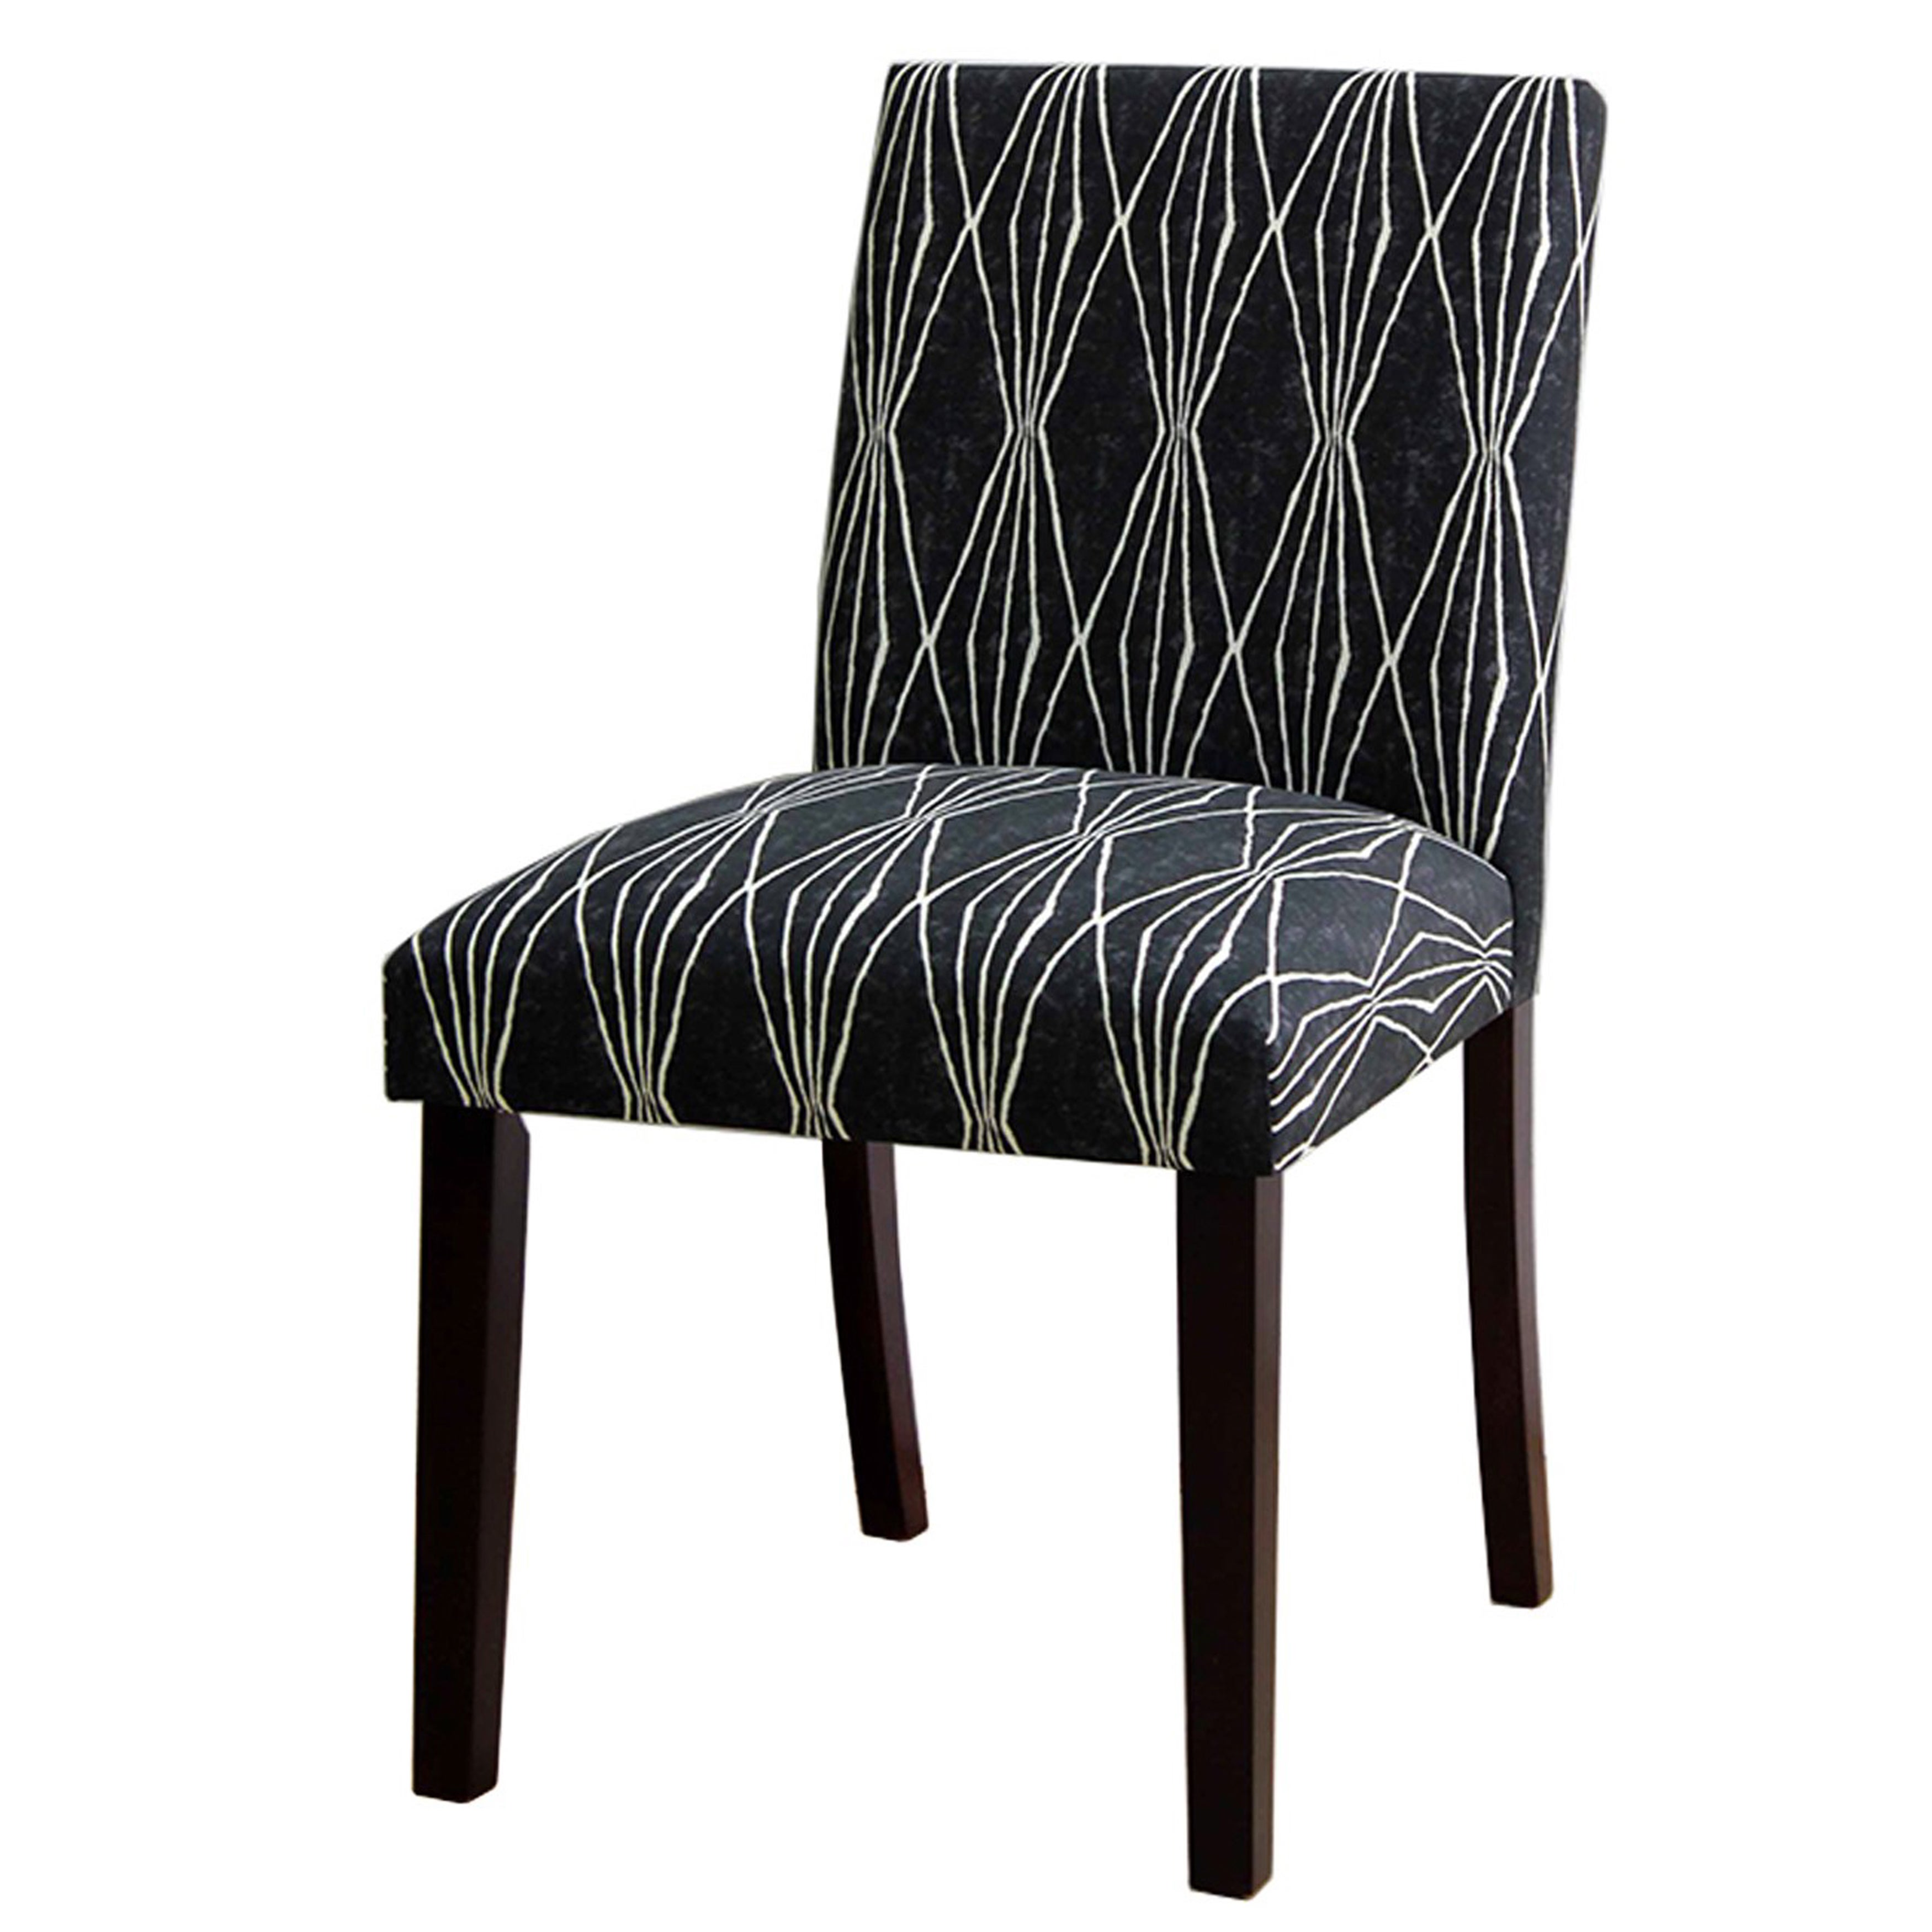 Exceptionnel Shop Skyline Furniture Uptown Hand Shapes Coal Dining Chair   Free Shipping  Today   Overstock.com   10759730